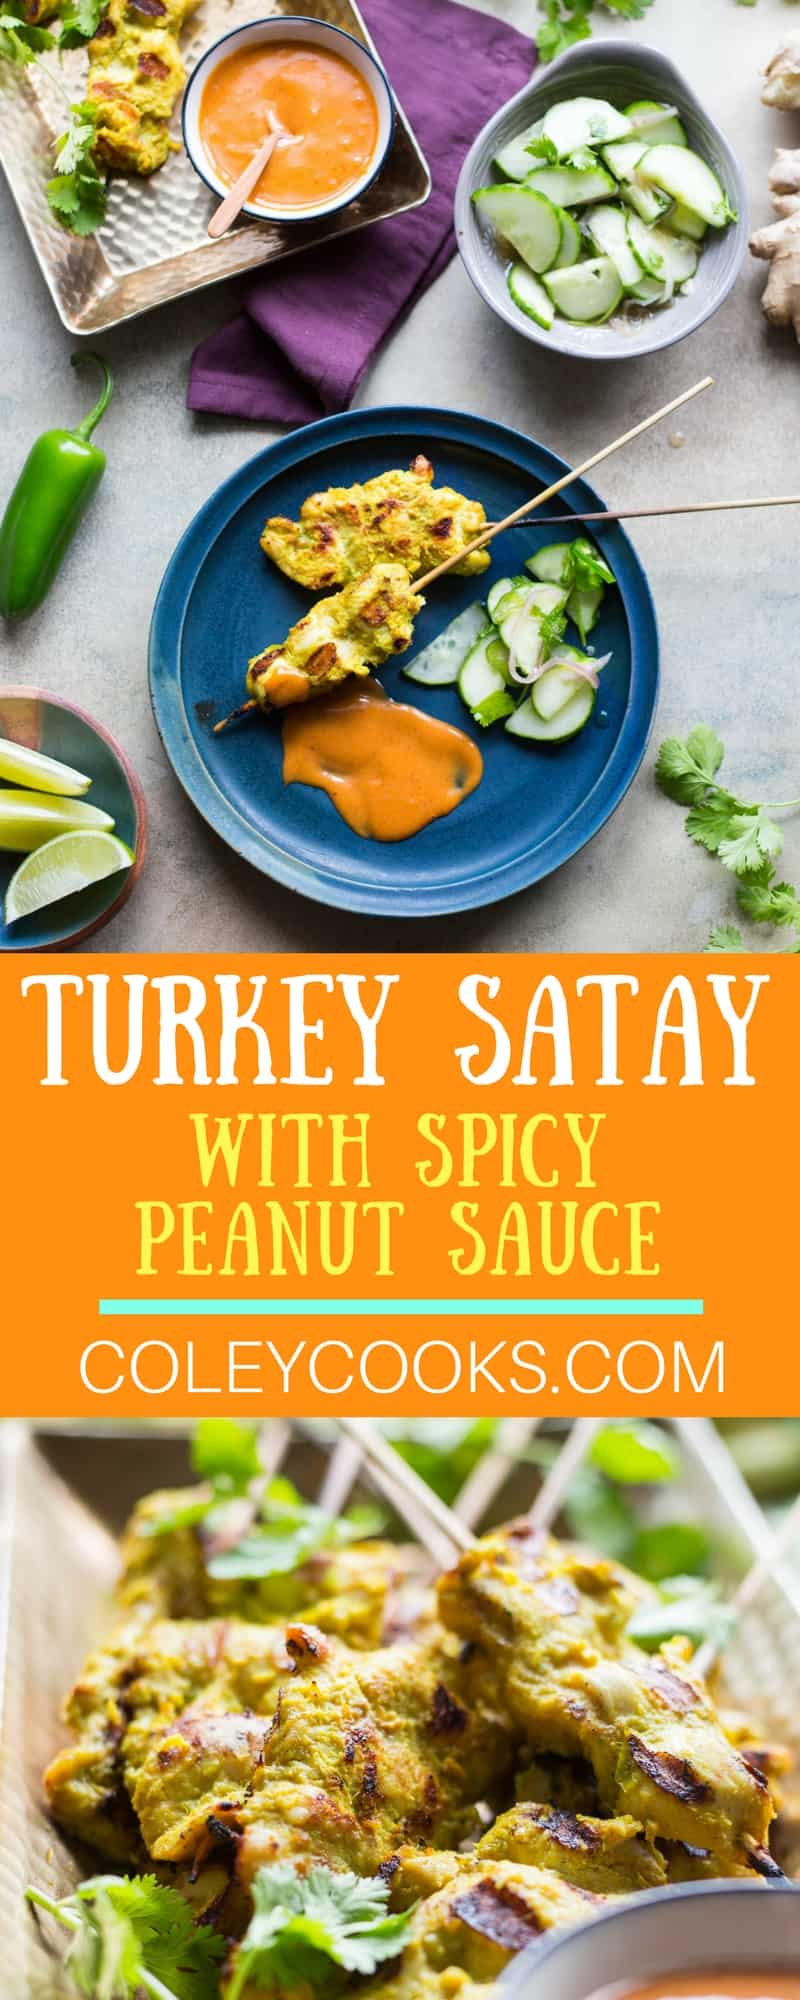 Turkey Satay with Spicy Peanut Sauce. This satay recipe is low carb and full of authentic flavor.